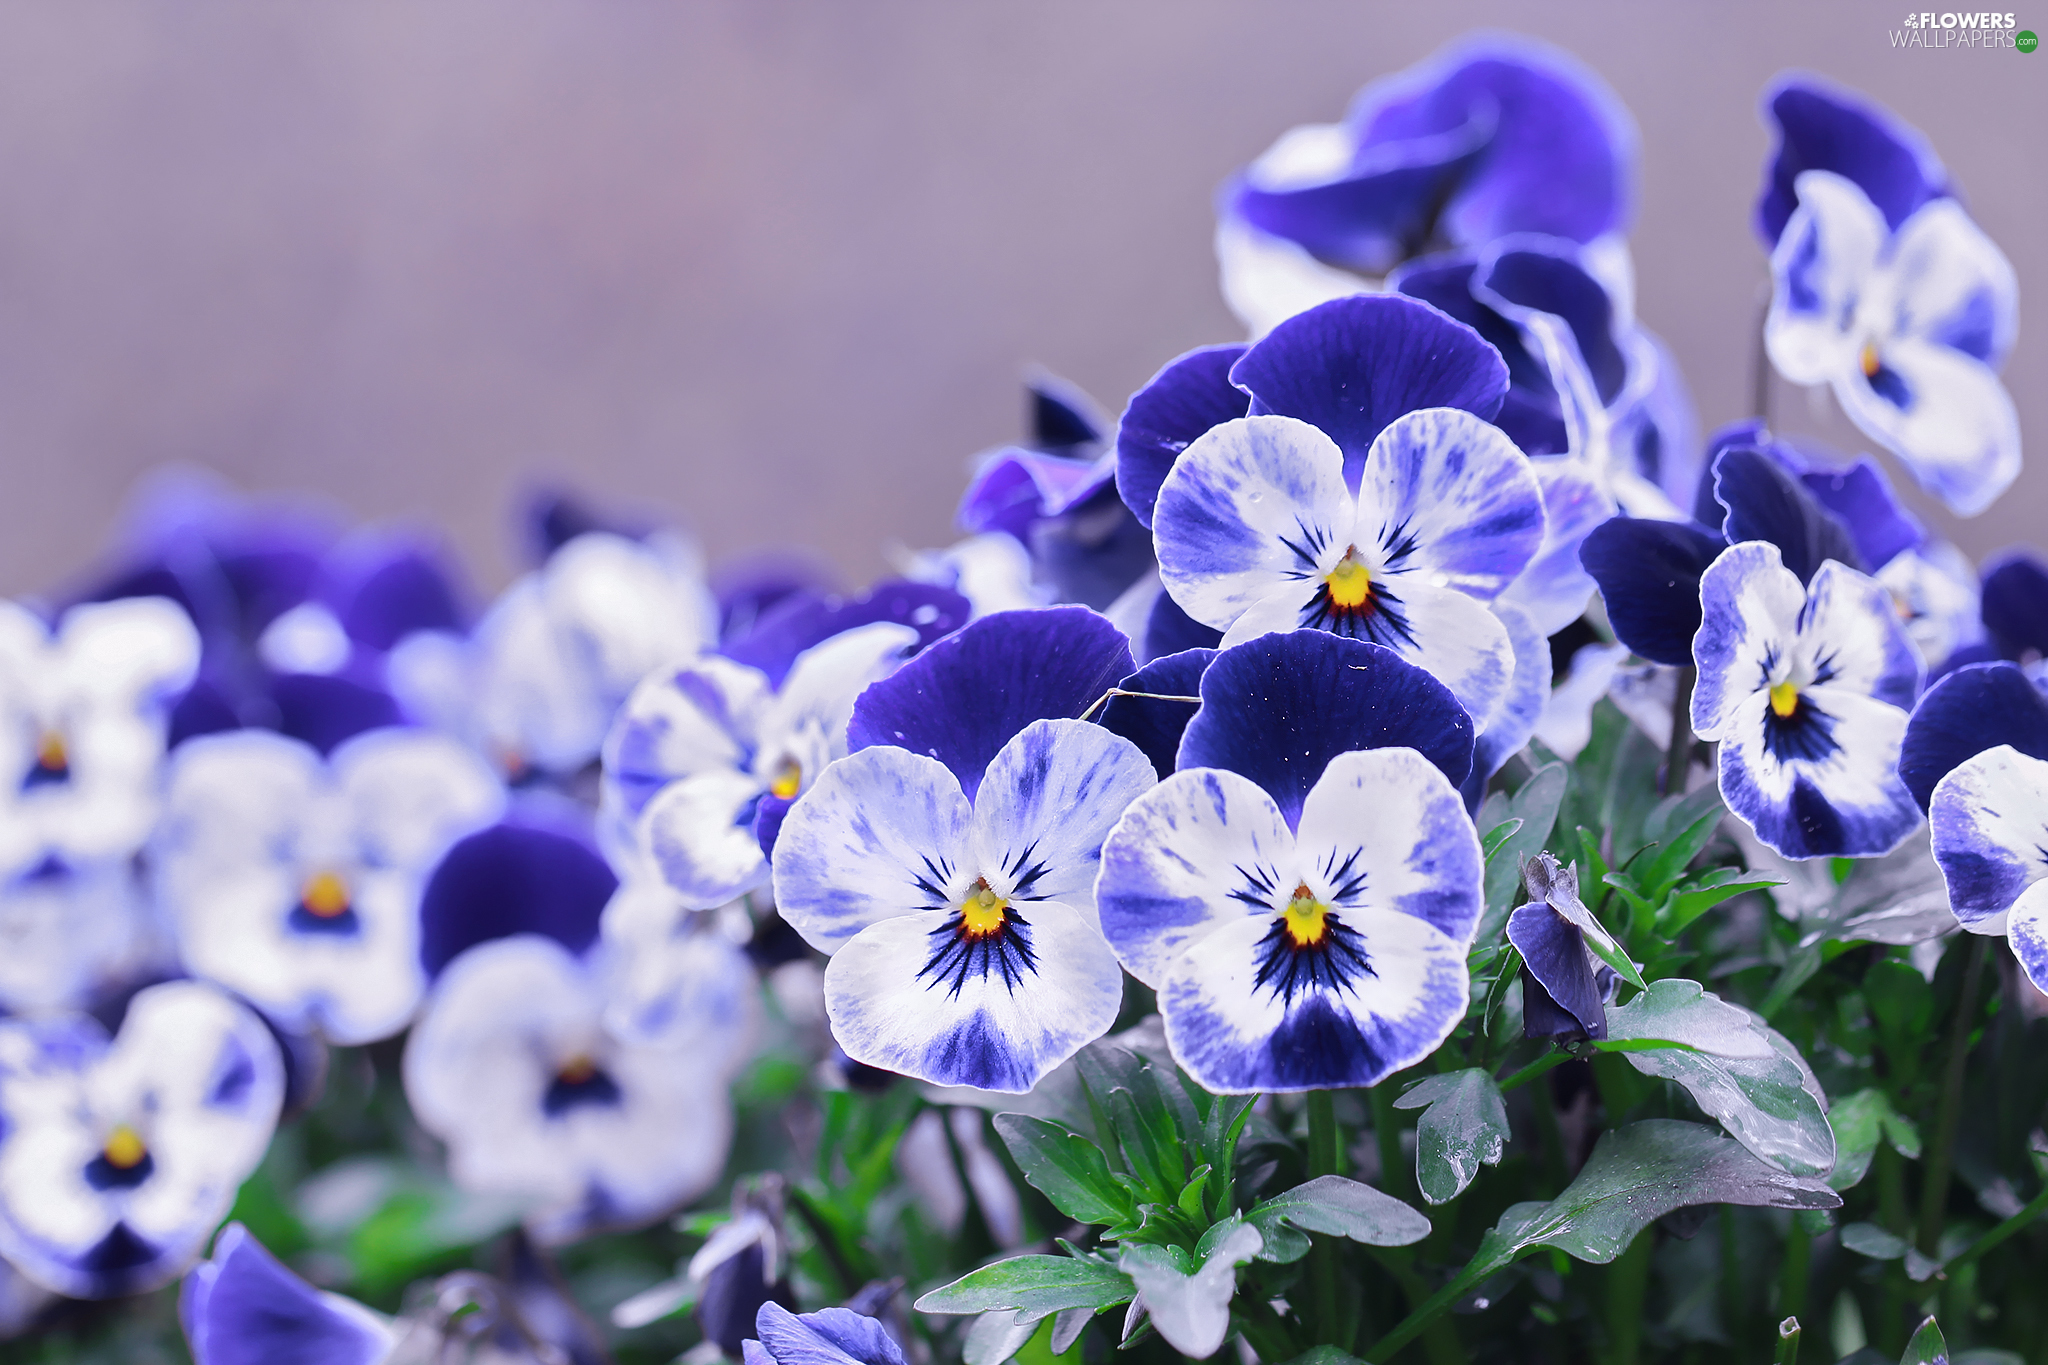 blue, pansies, Flowers, White